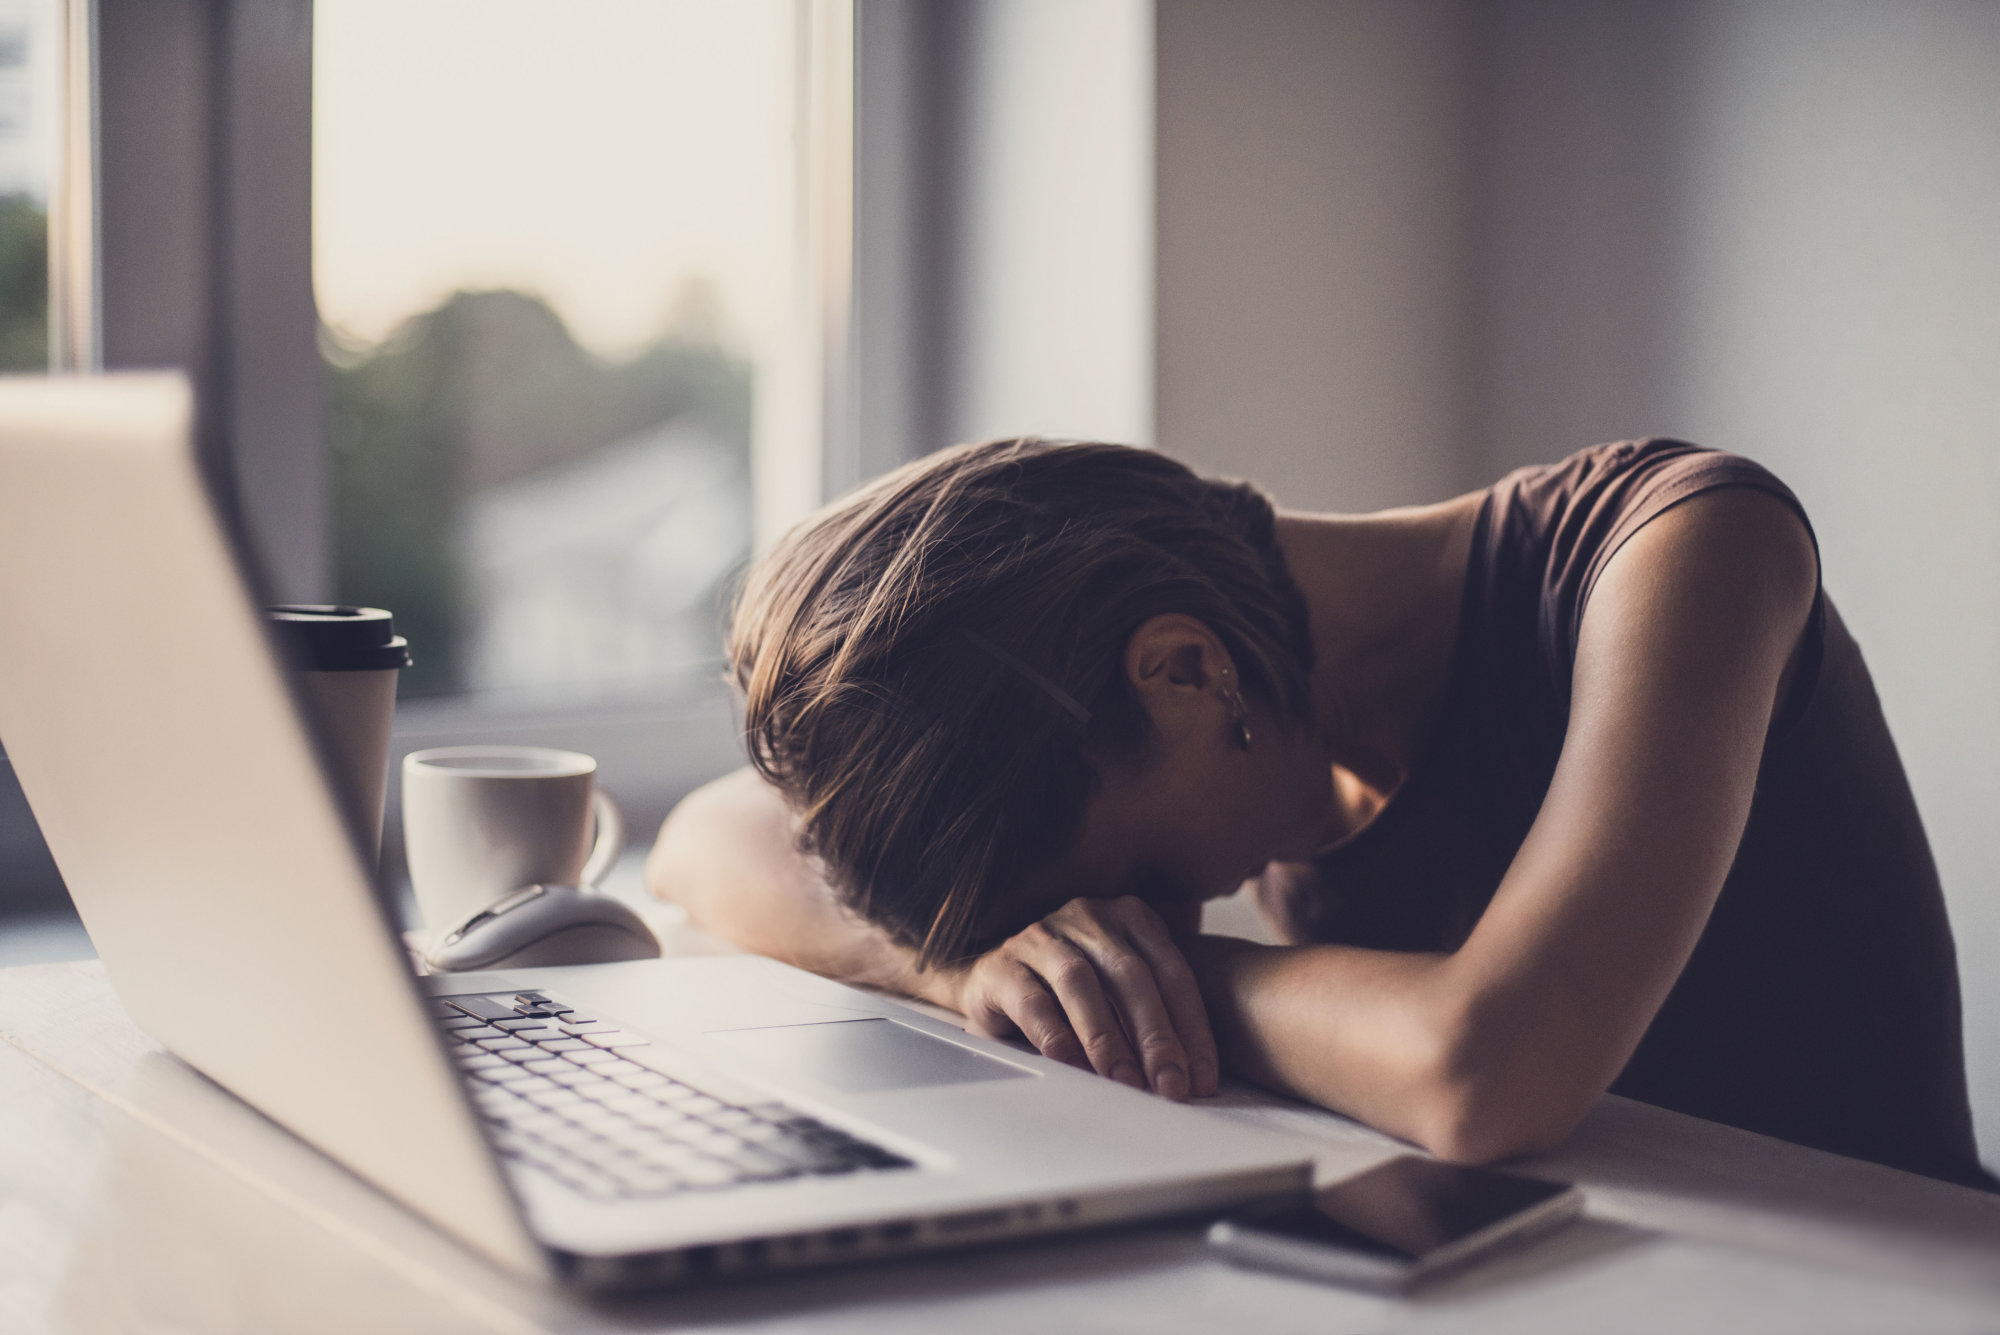 Constantly tired at work? Stop bringing your phone to bed